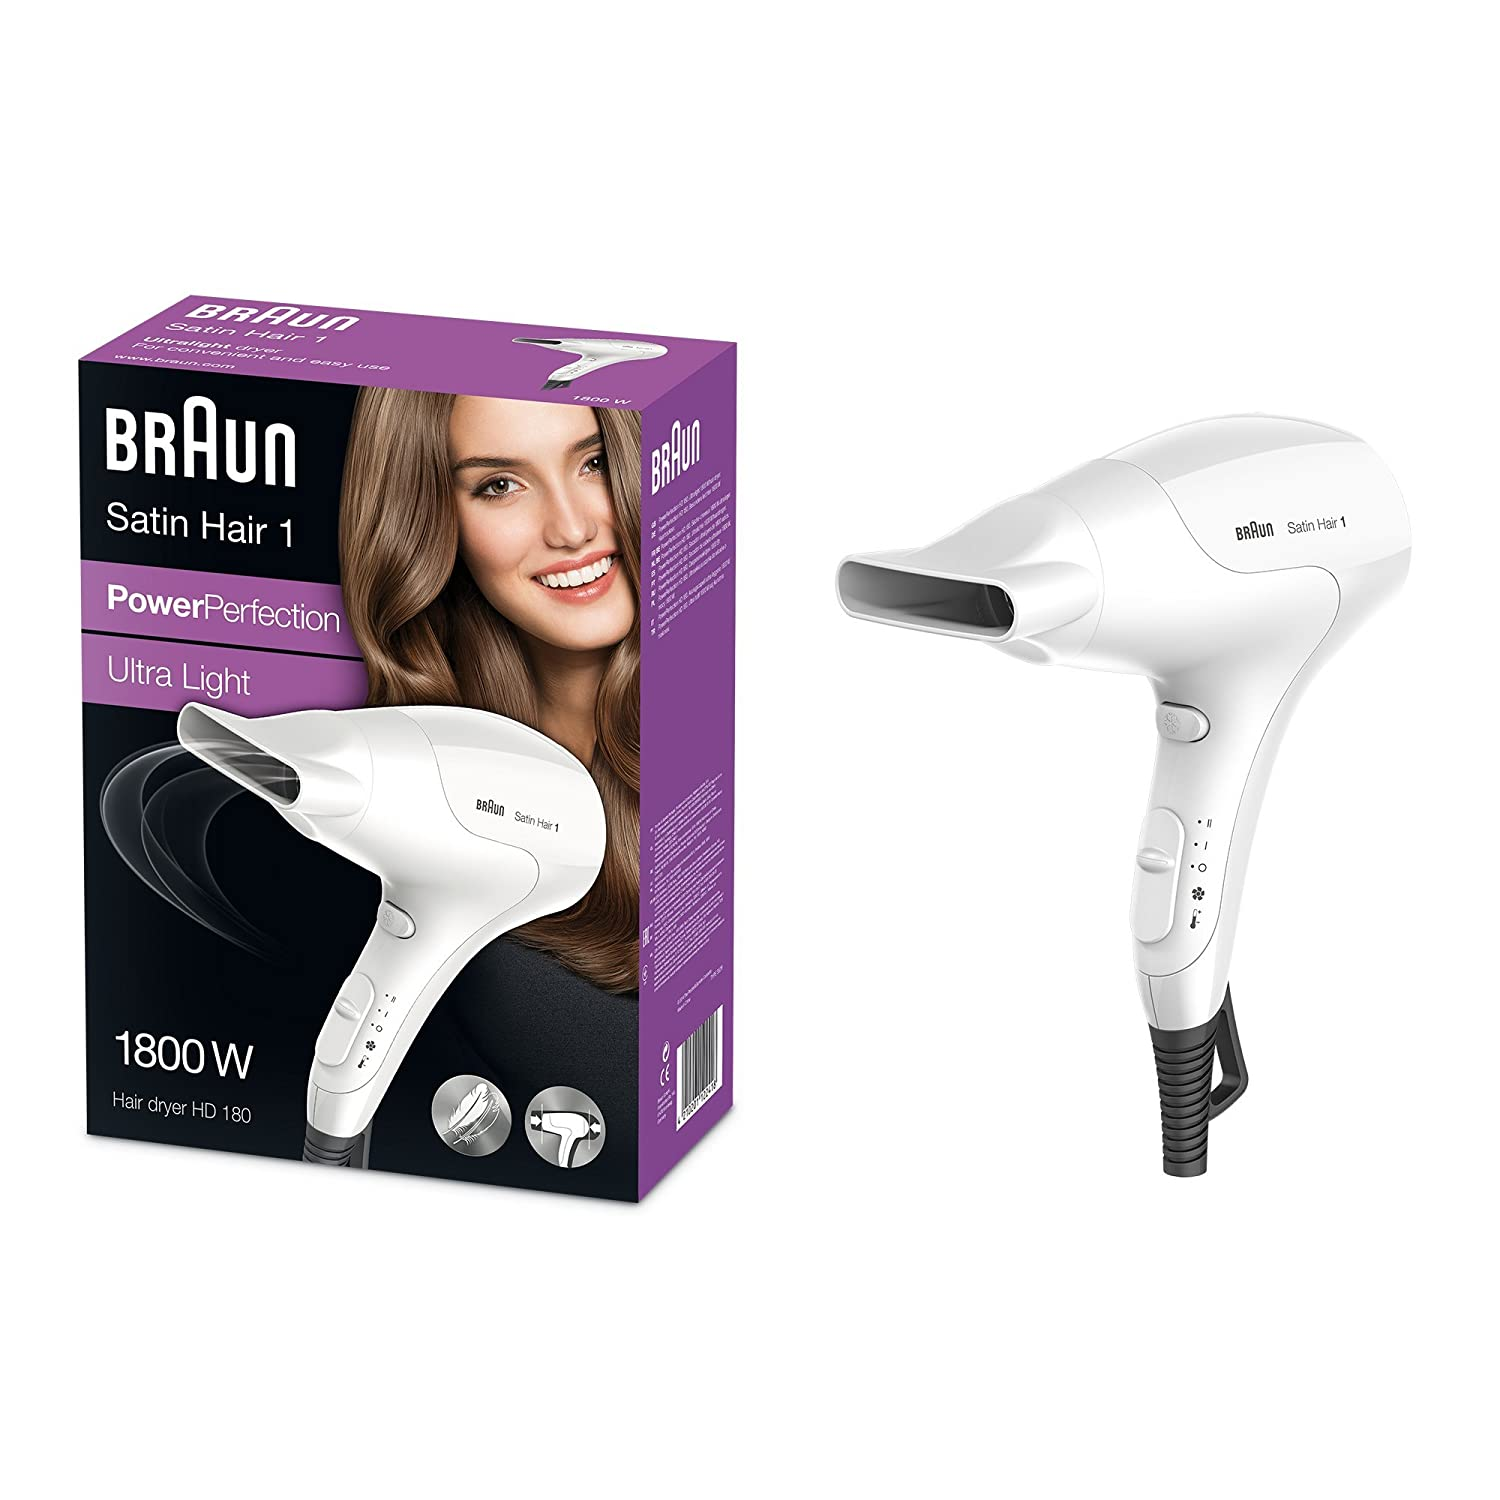 Braun Satin Hair HD 180 - Secador de pelo (17,8 cm, 8,6 cm, 24,2 cm, 3,83 kg, 541 x 194 x 271 mm) Color blanco: Amazon.es: Salud y cuidado personal